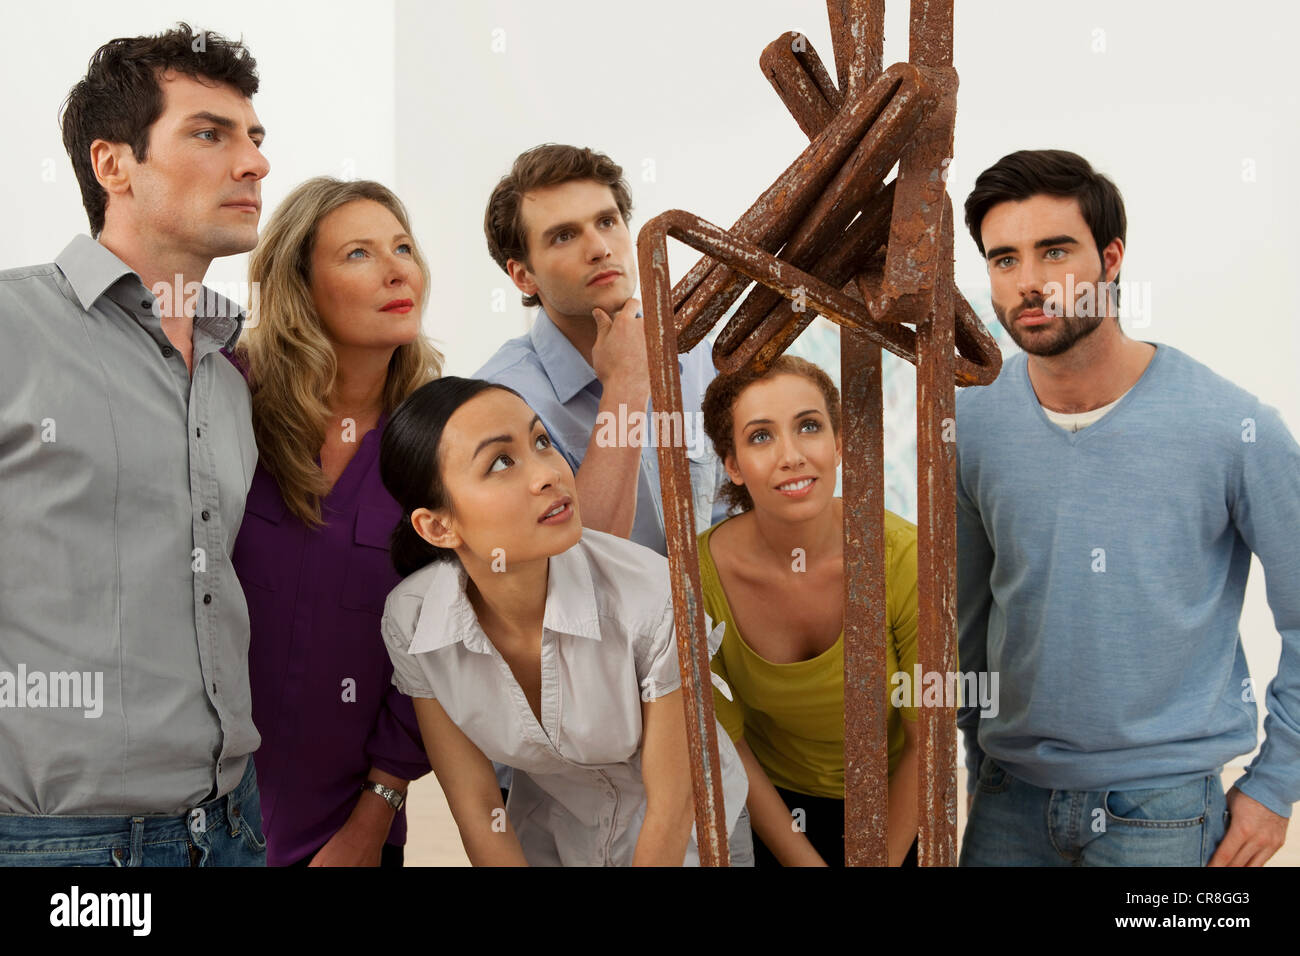 Visitors looking at sculpture in art gallery - Stock Image